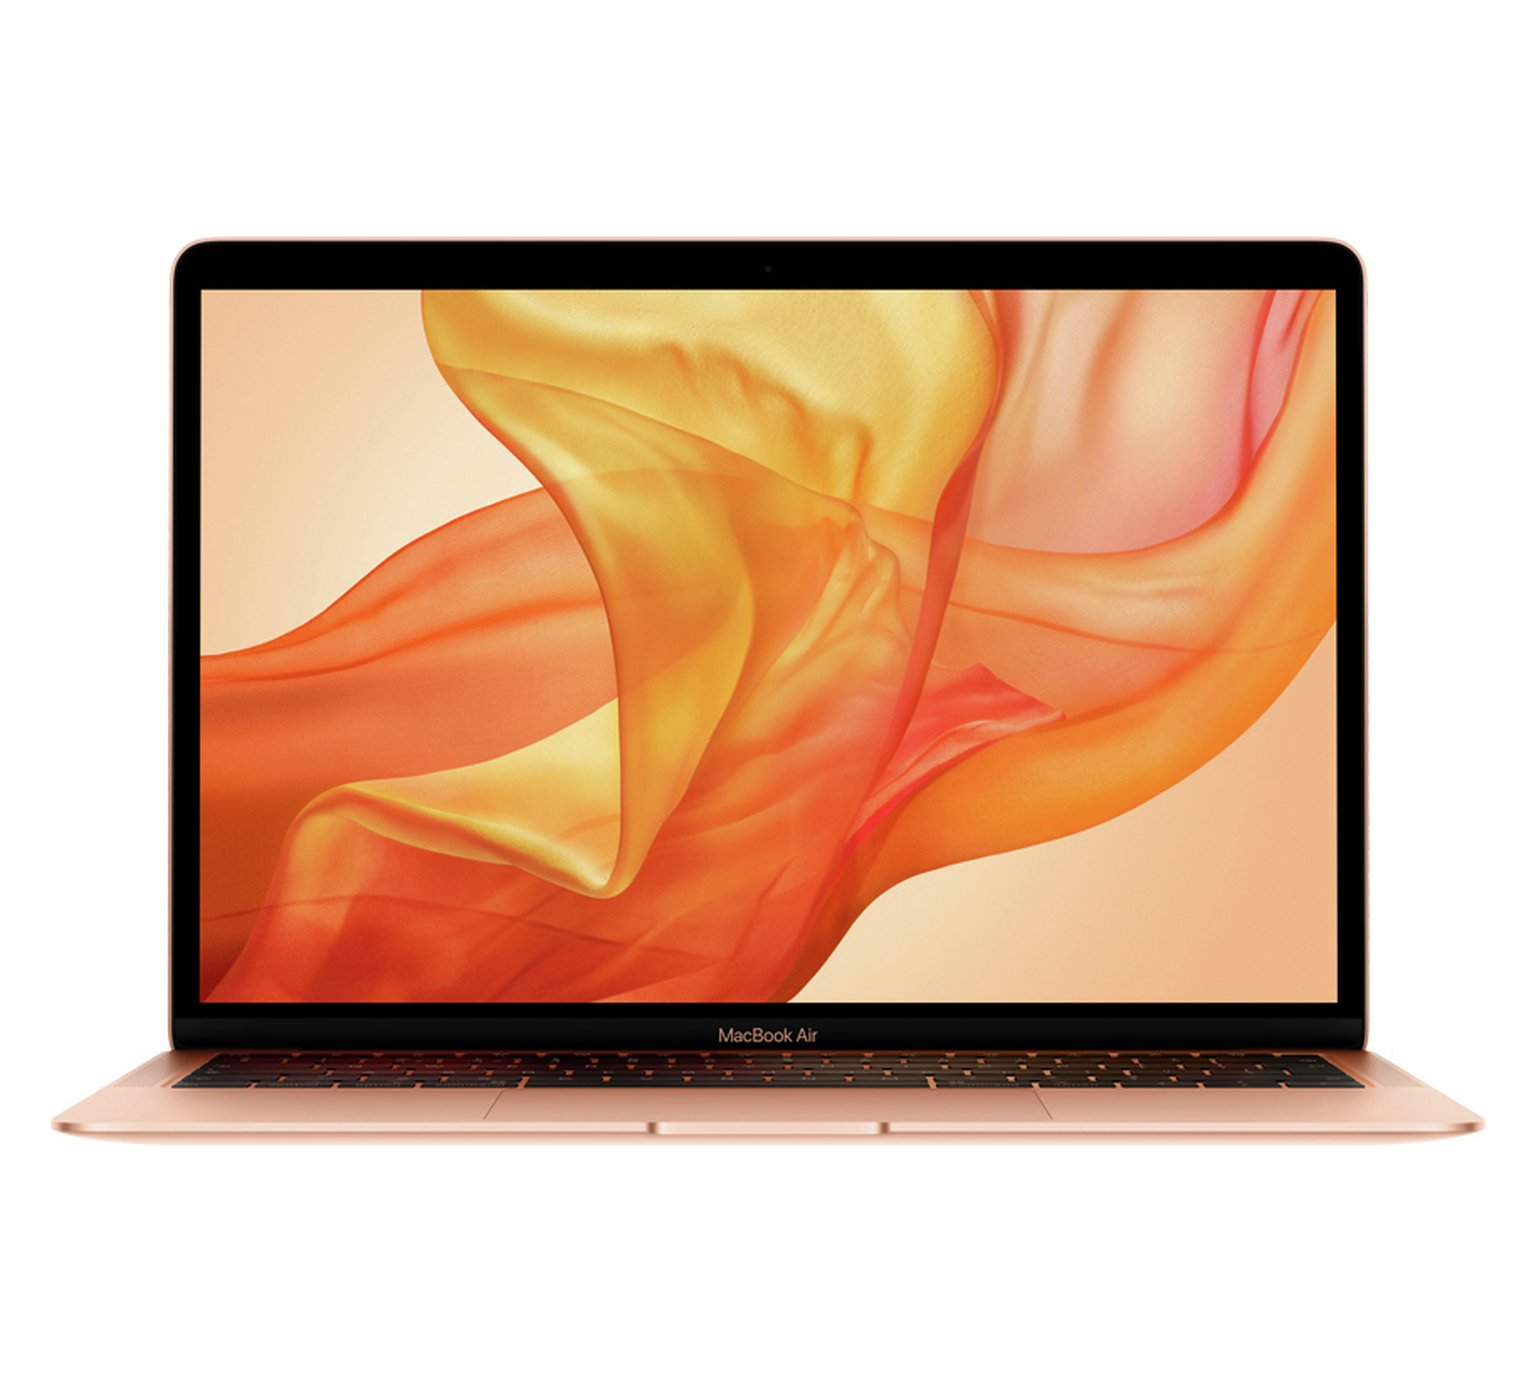 Apple MacBook Air 2018 13 Inch i5 8GB 256GB - Gold